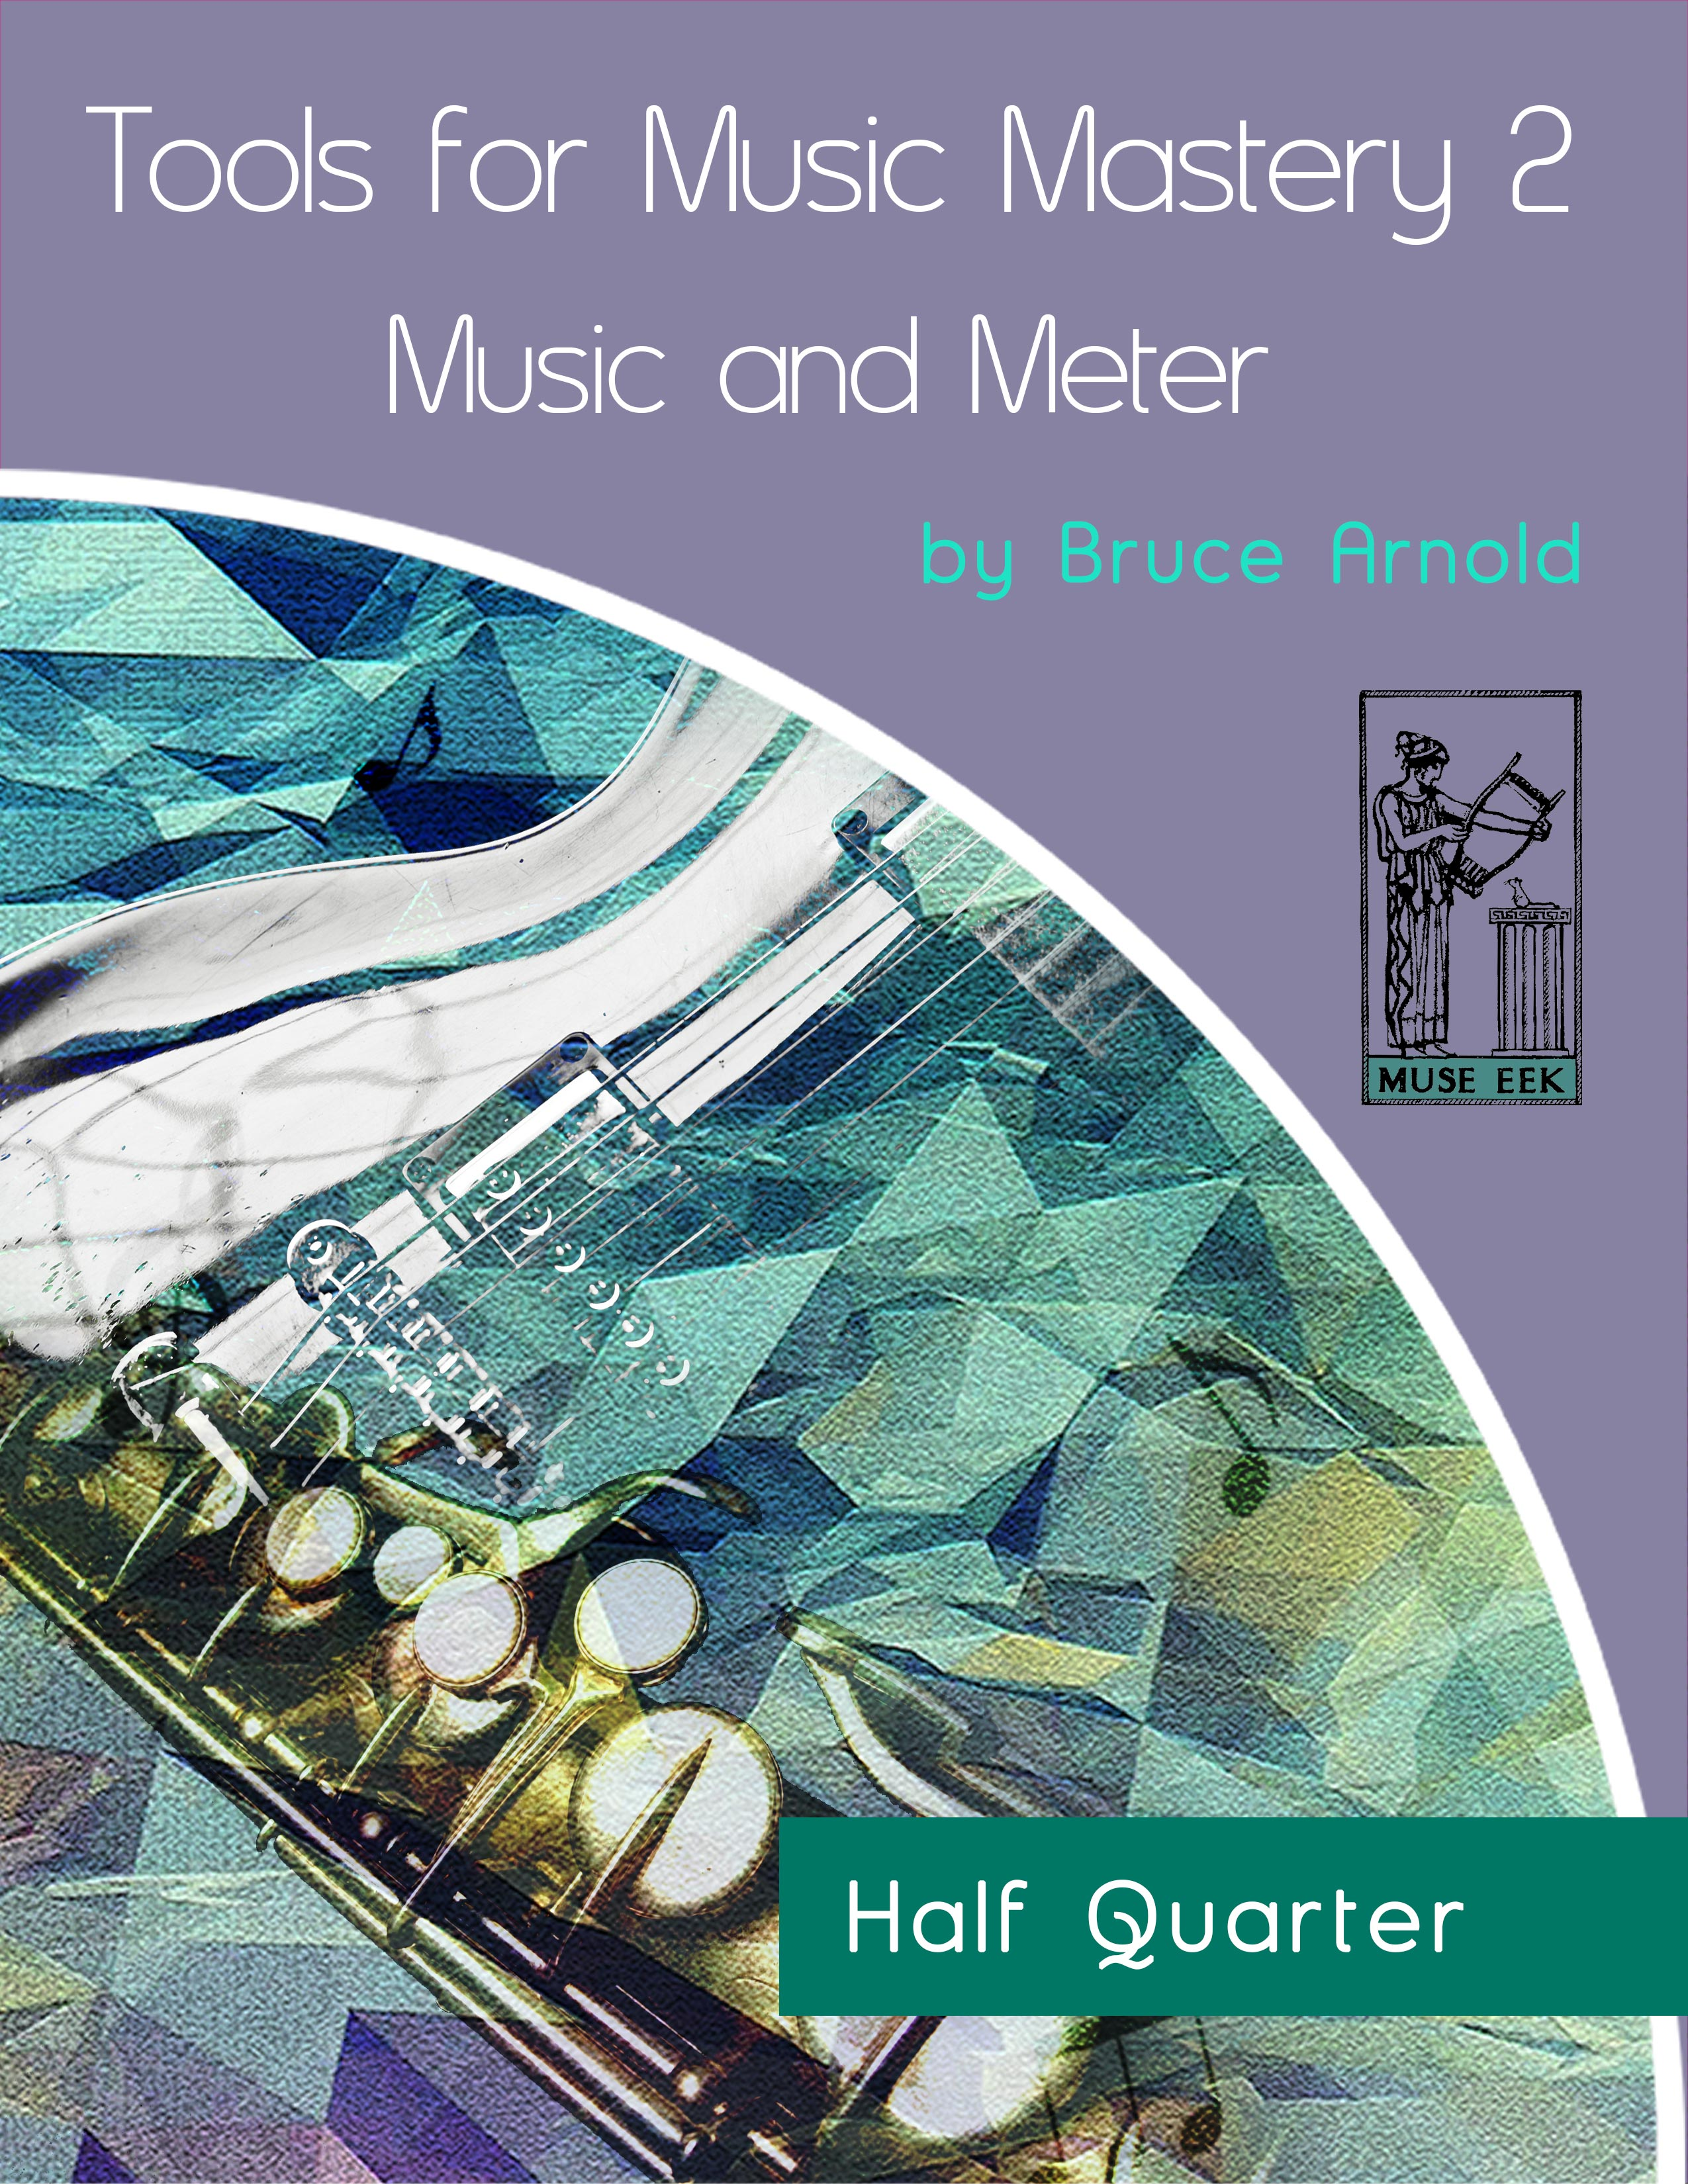 Tools for Music Mastery 2 Half Quarter